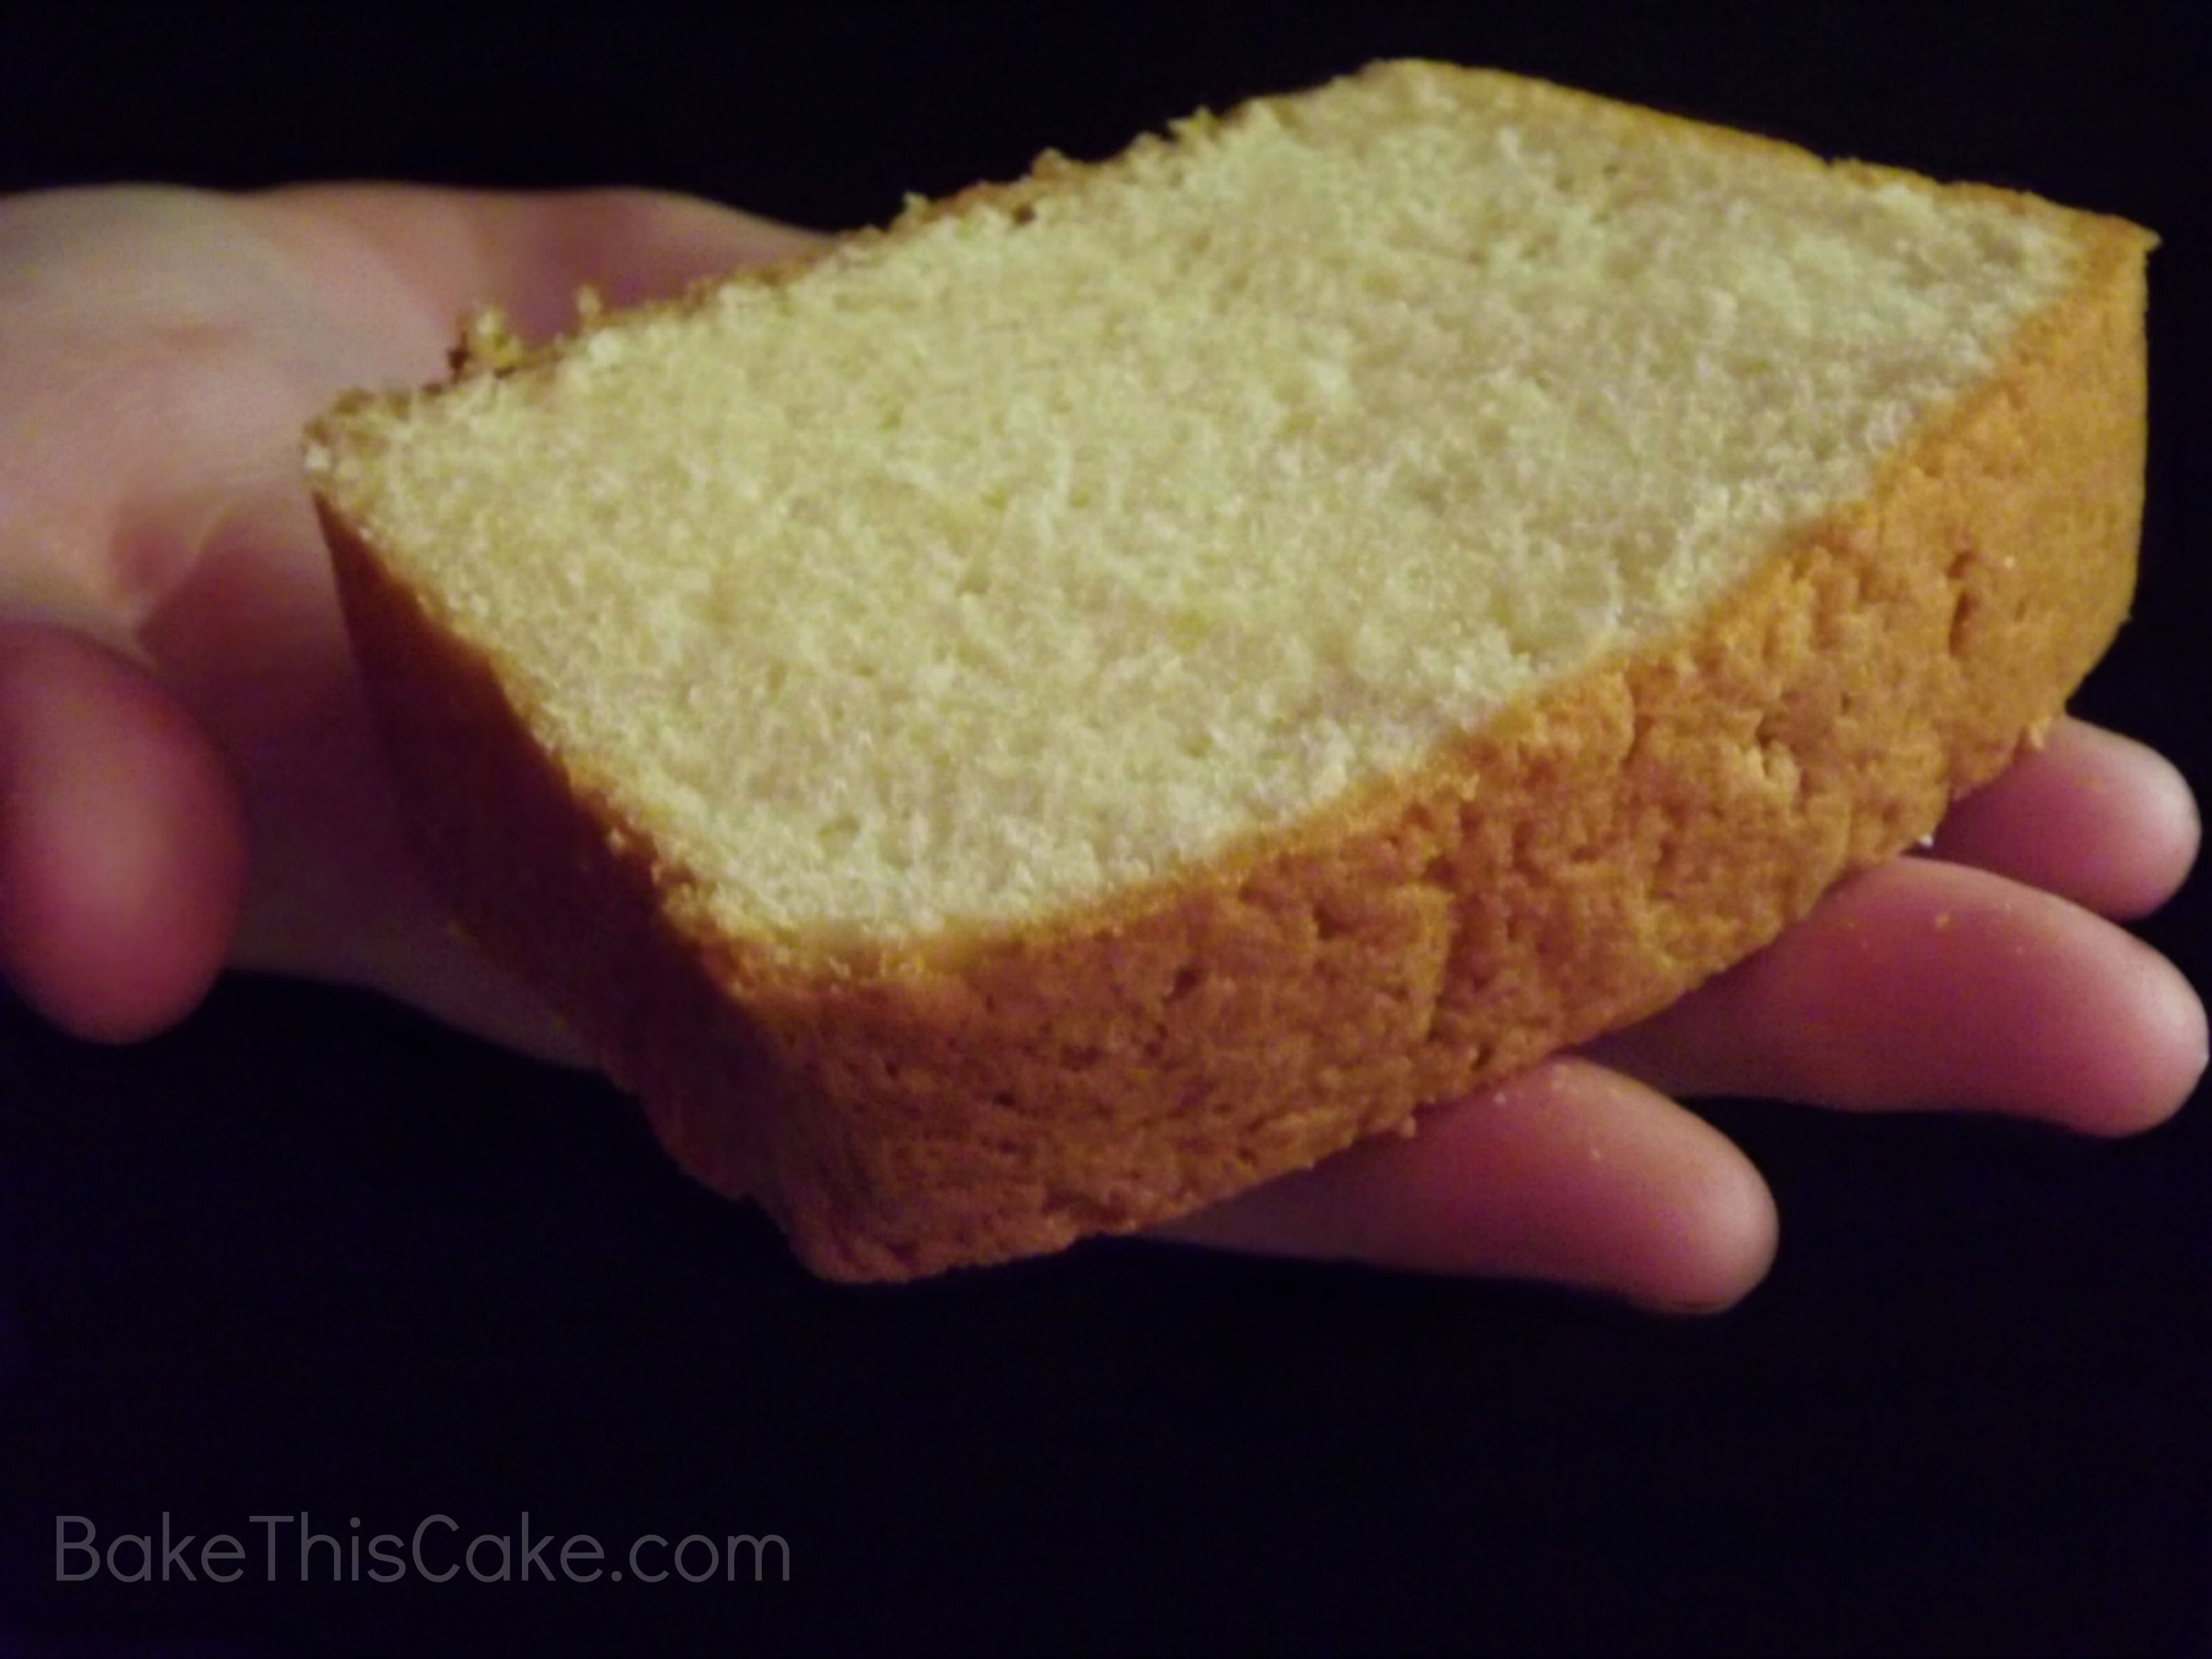 Vintage Sour Cream Pound Cake Recipe And An Amazing Group Of Women Helping Women Pound Cake Recipes Sour Cream Pound Cake Cake Recipes